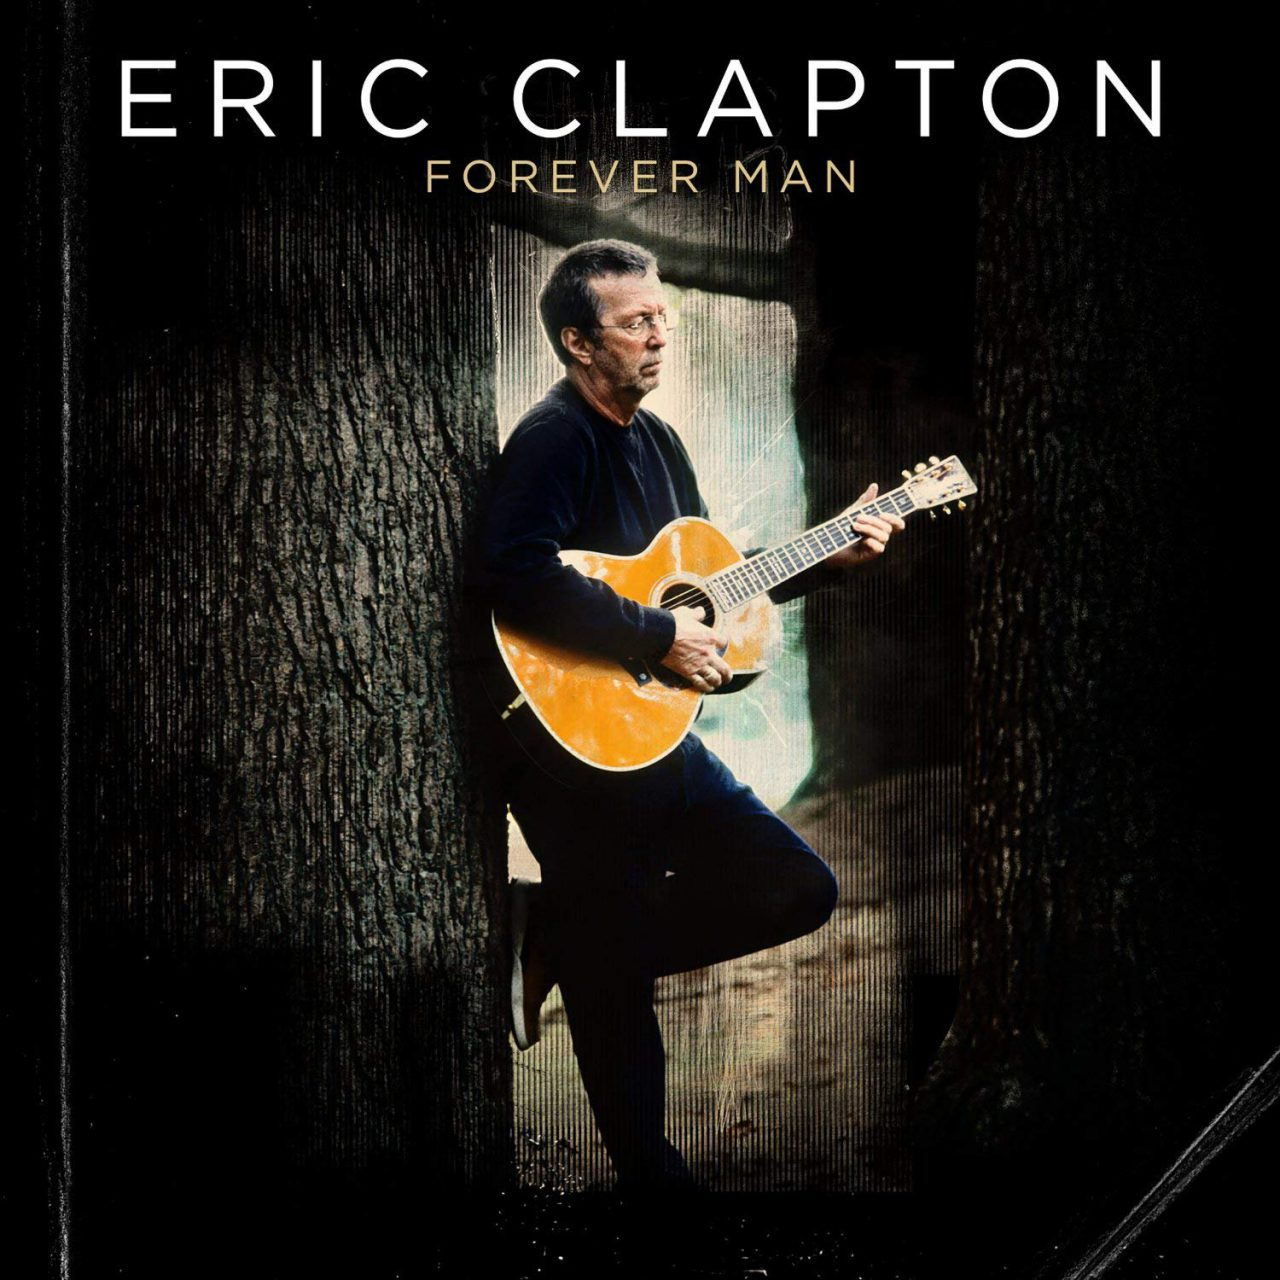 Eric Clapton – Forever Man